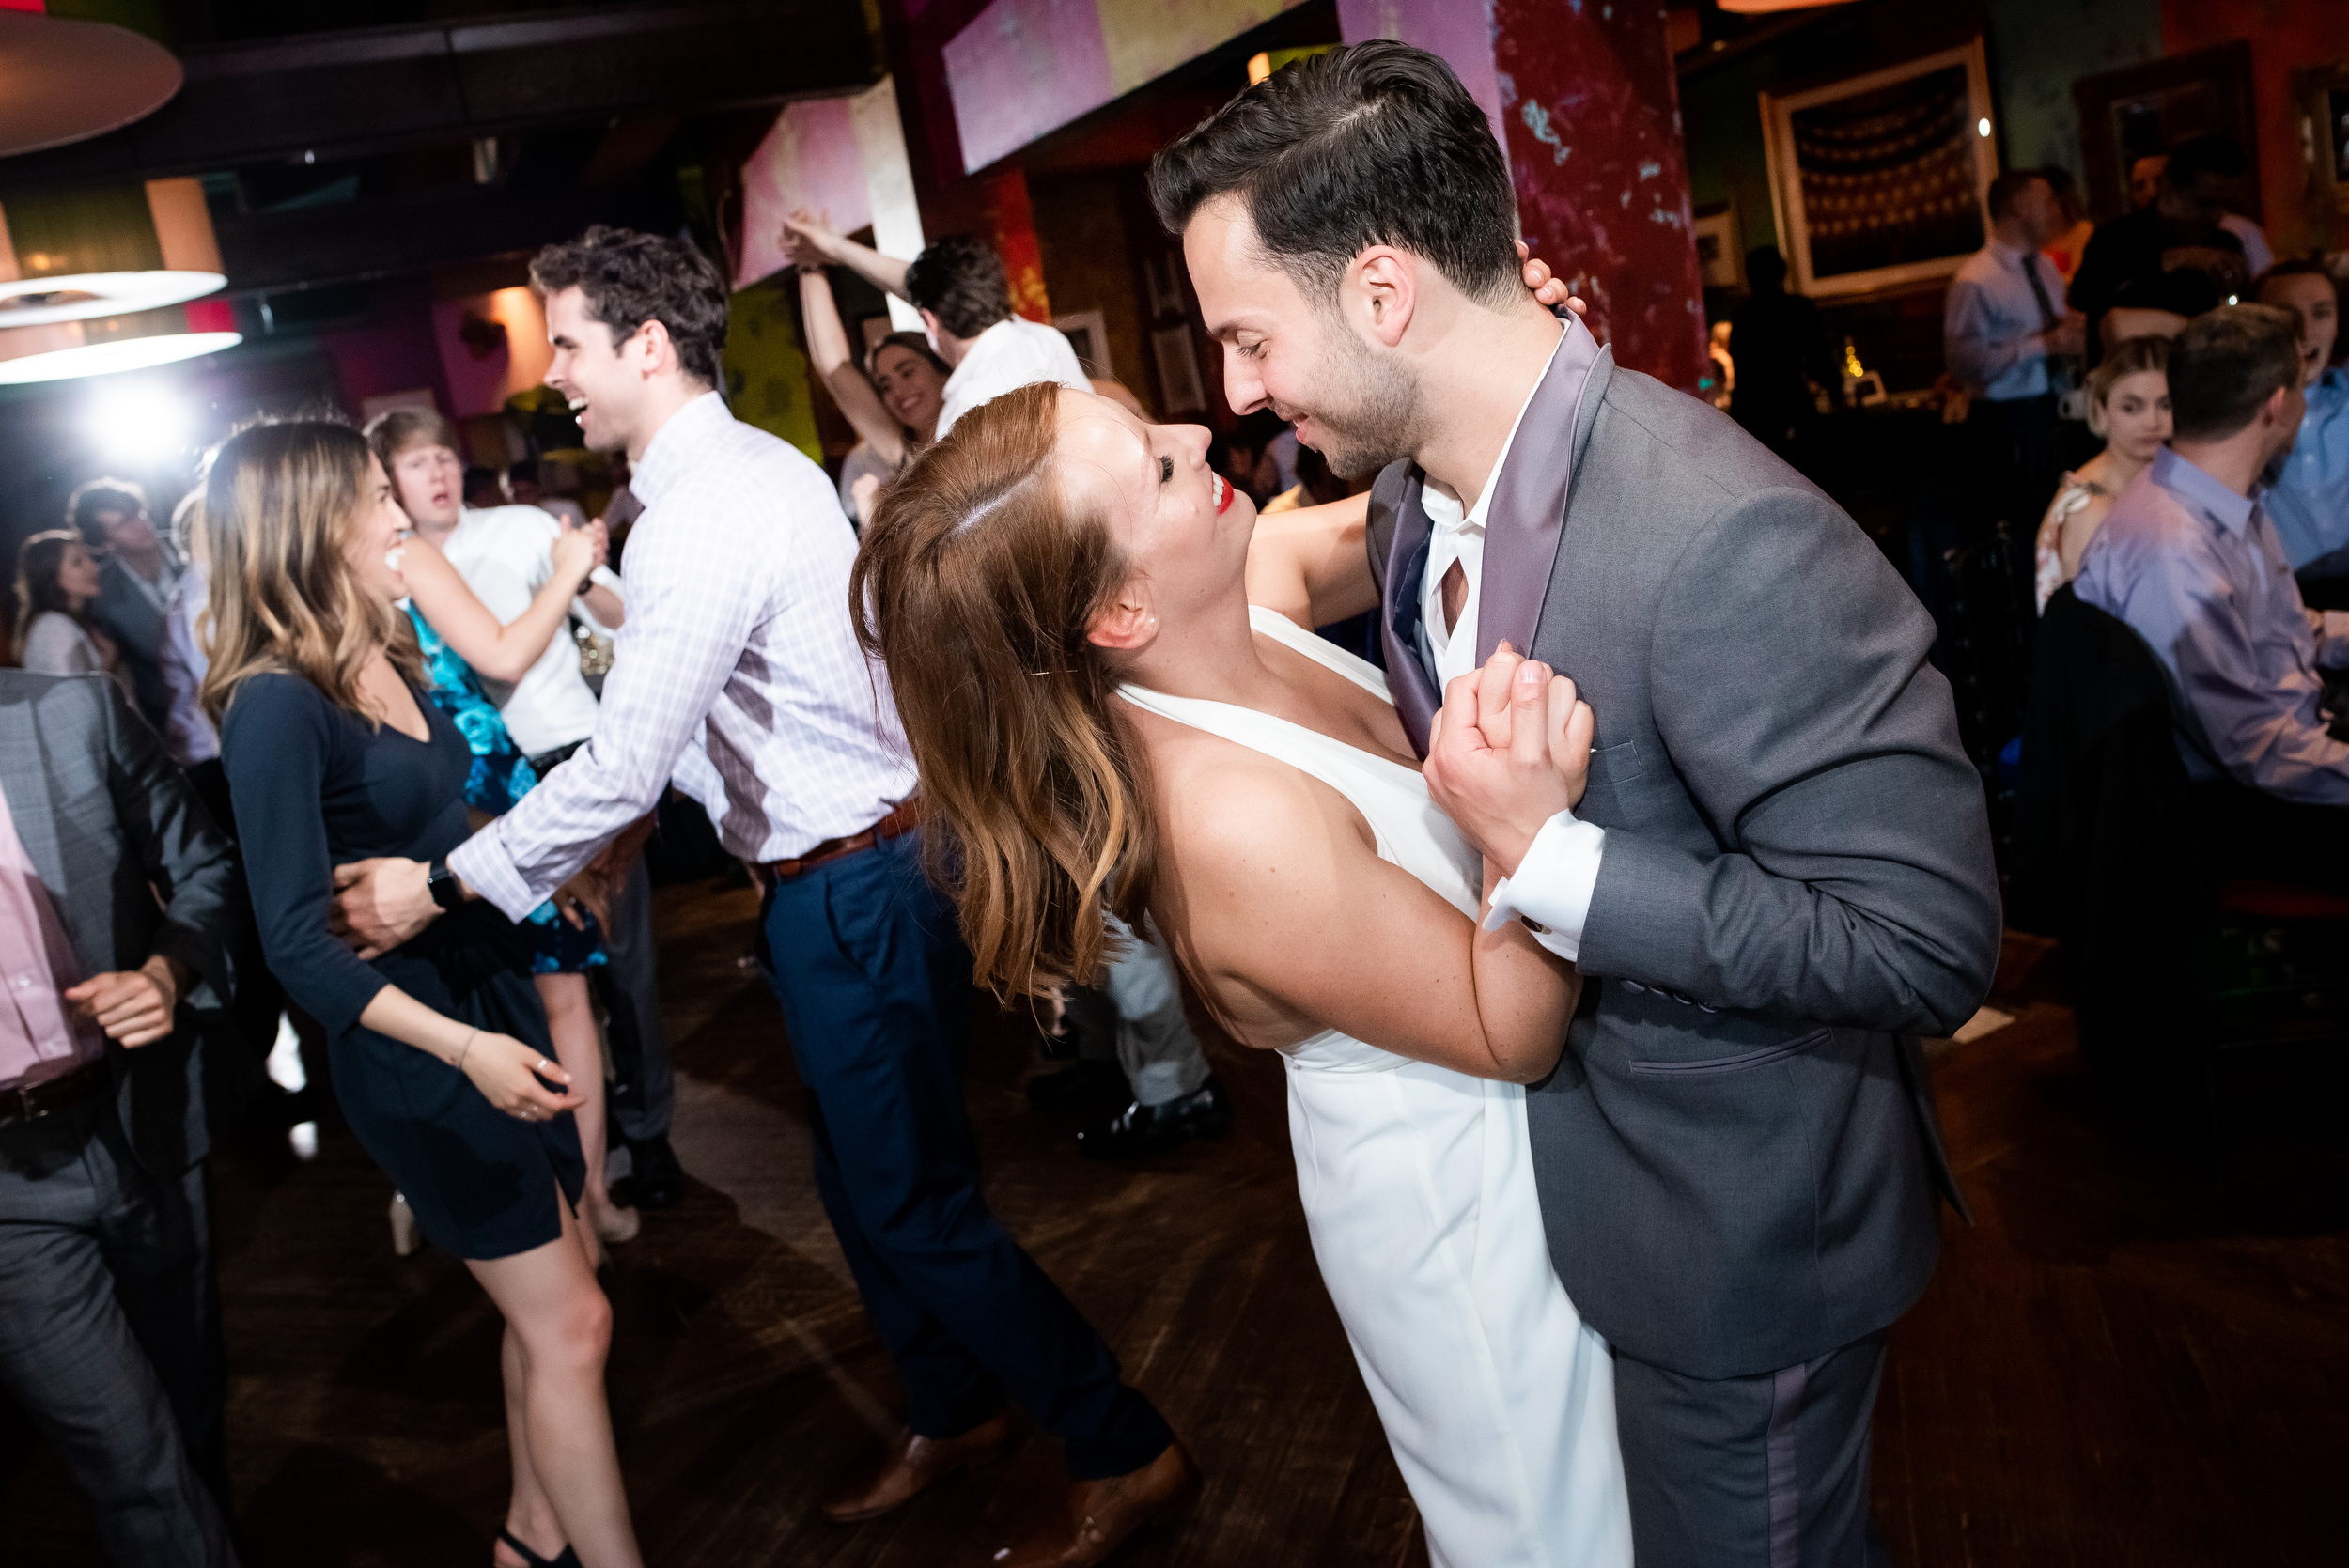 Chicago wedding photos: Carnivale Chicago wedding captured by J Brown Photography